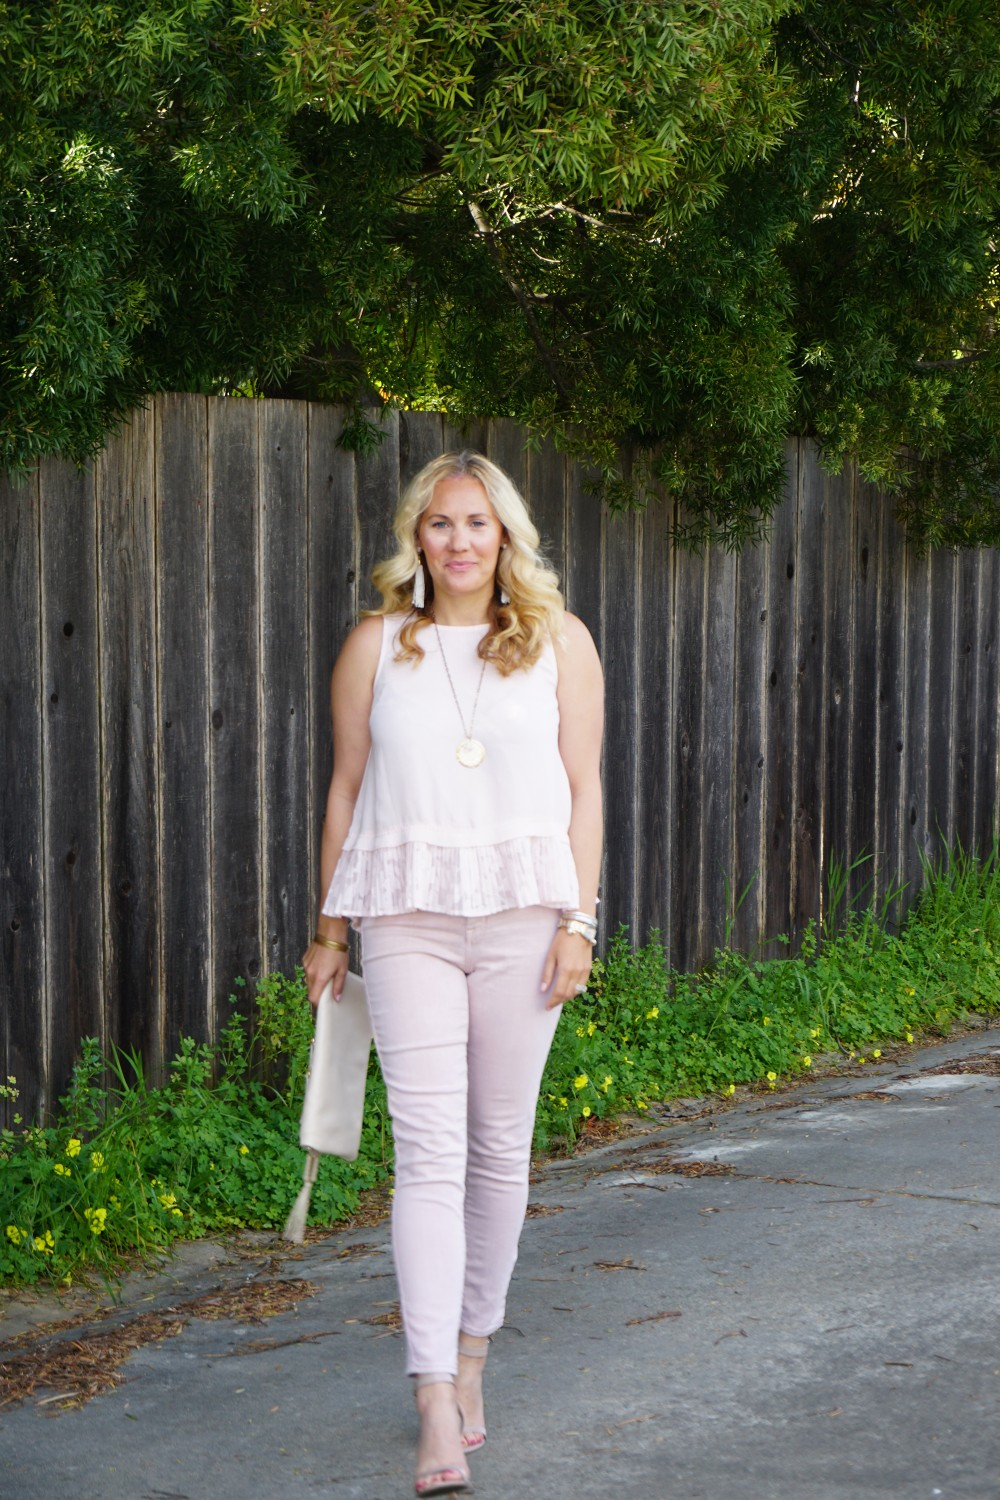 Blush Pink Easter Outfit-Easter Outfit Idea-Target Style-Who What Wear for Target-Outfit Inspiration-Have Need Want 9